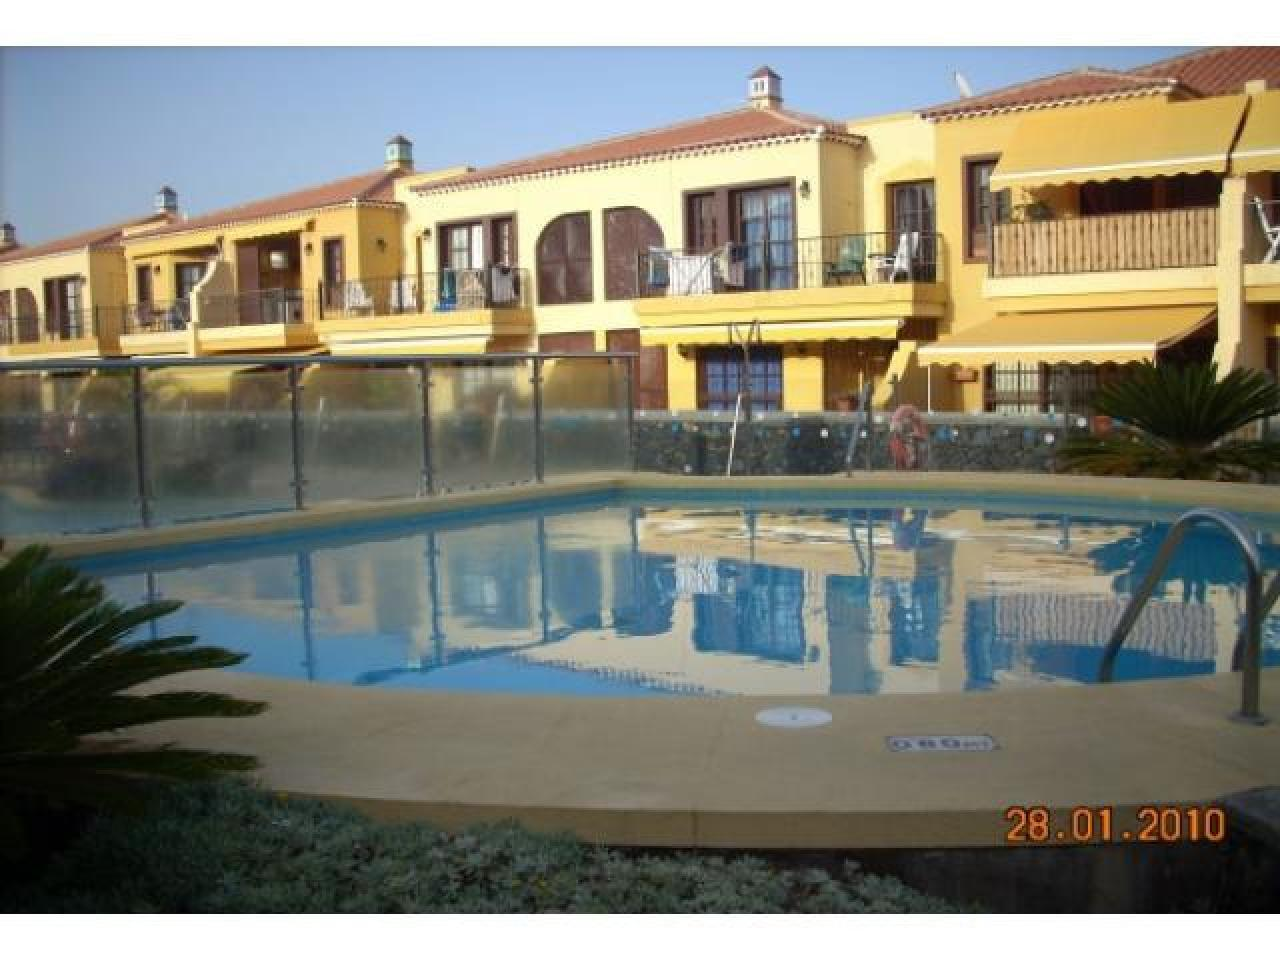 Real estate in Tenerife for sale » #138 - 5